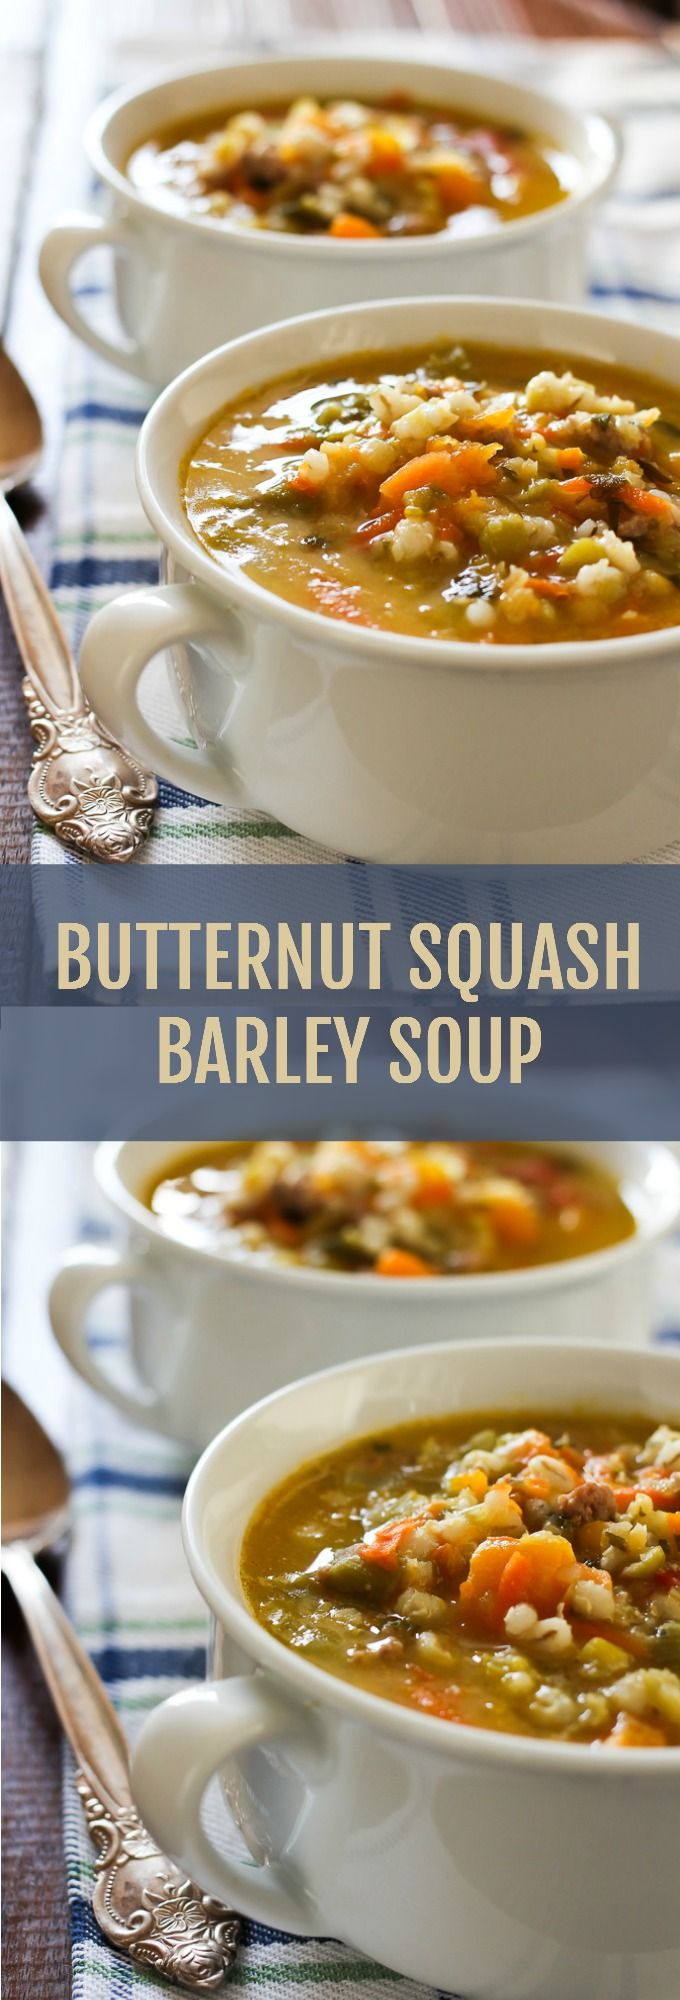 This Hearty Butternut Squash Barley Soup is full of healthy protein, low glycemic grains, and super healthy vegetables. Make it on the weekend and enjoy all week for lunch or dinner. Also good for freezing.